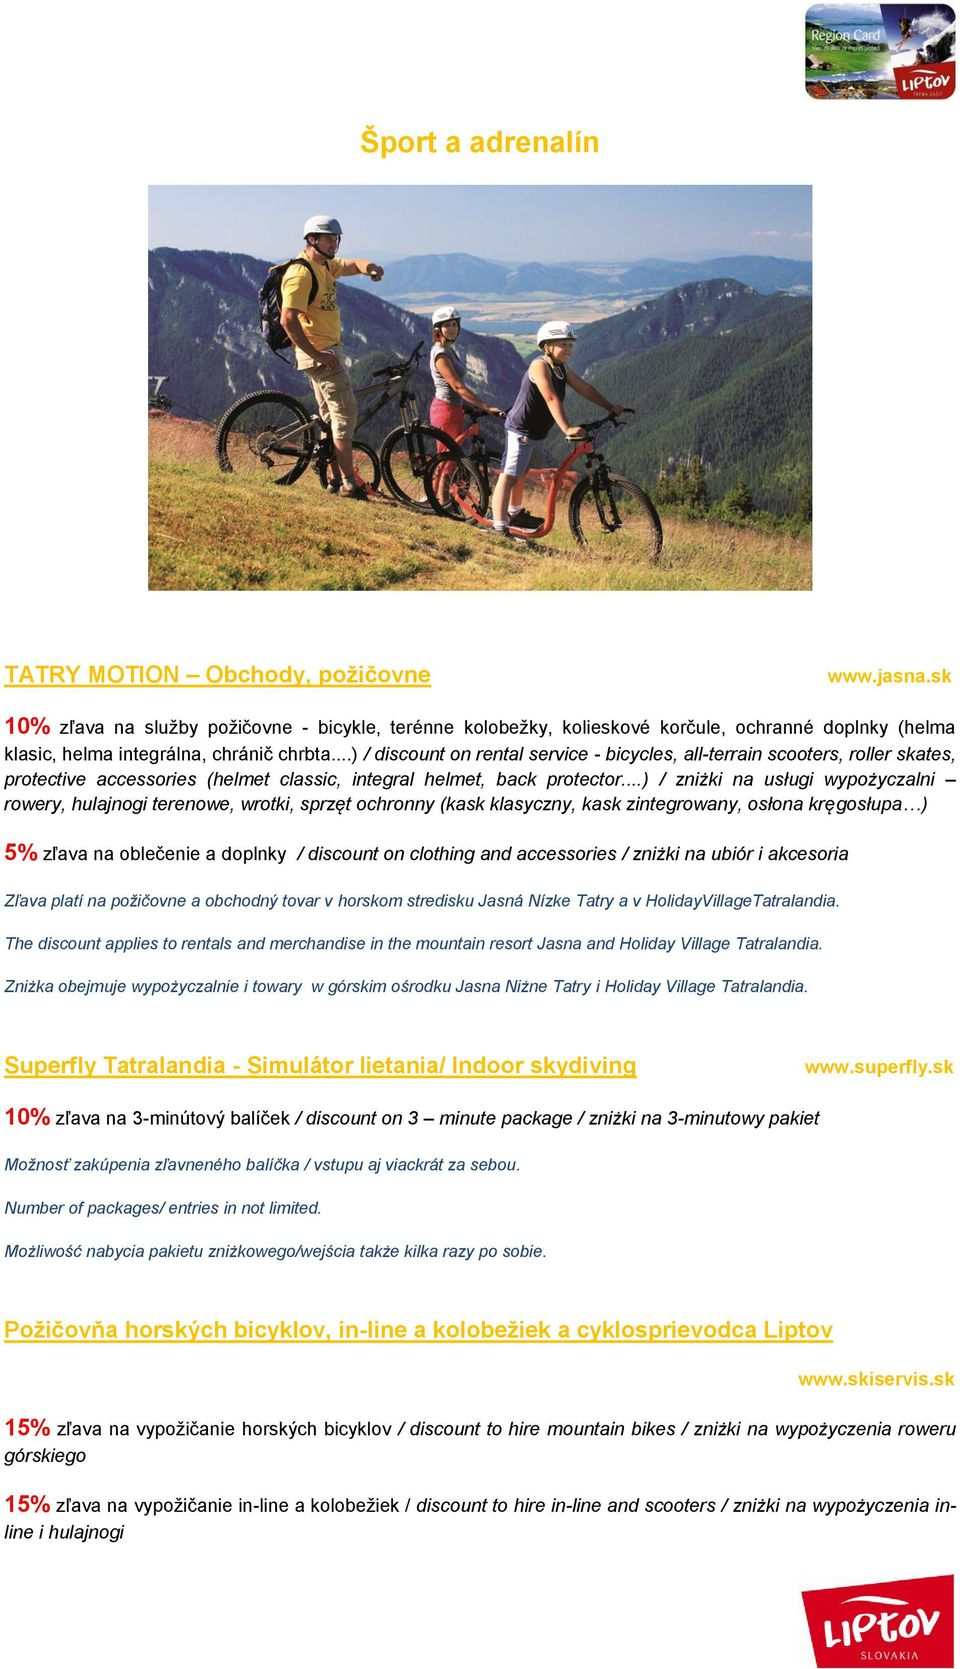 ..) / discount on rental service - bicycles, all-terrain scooters, roller skates, protective accessories (helmet classic, integral helmet, back protector.